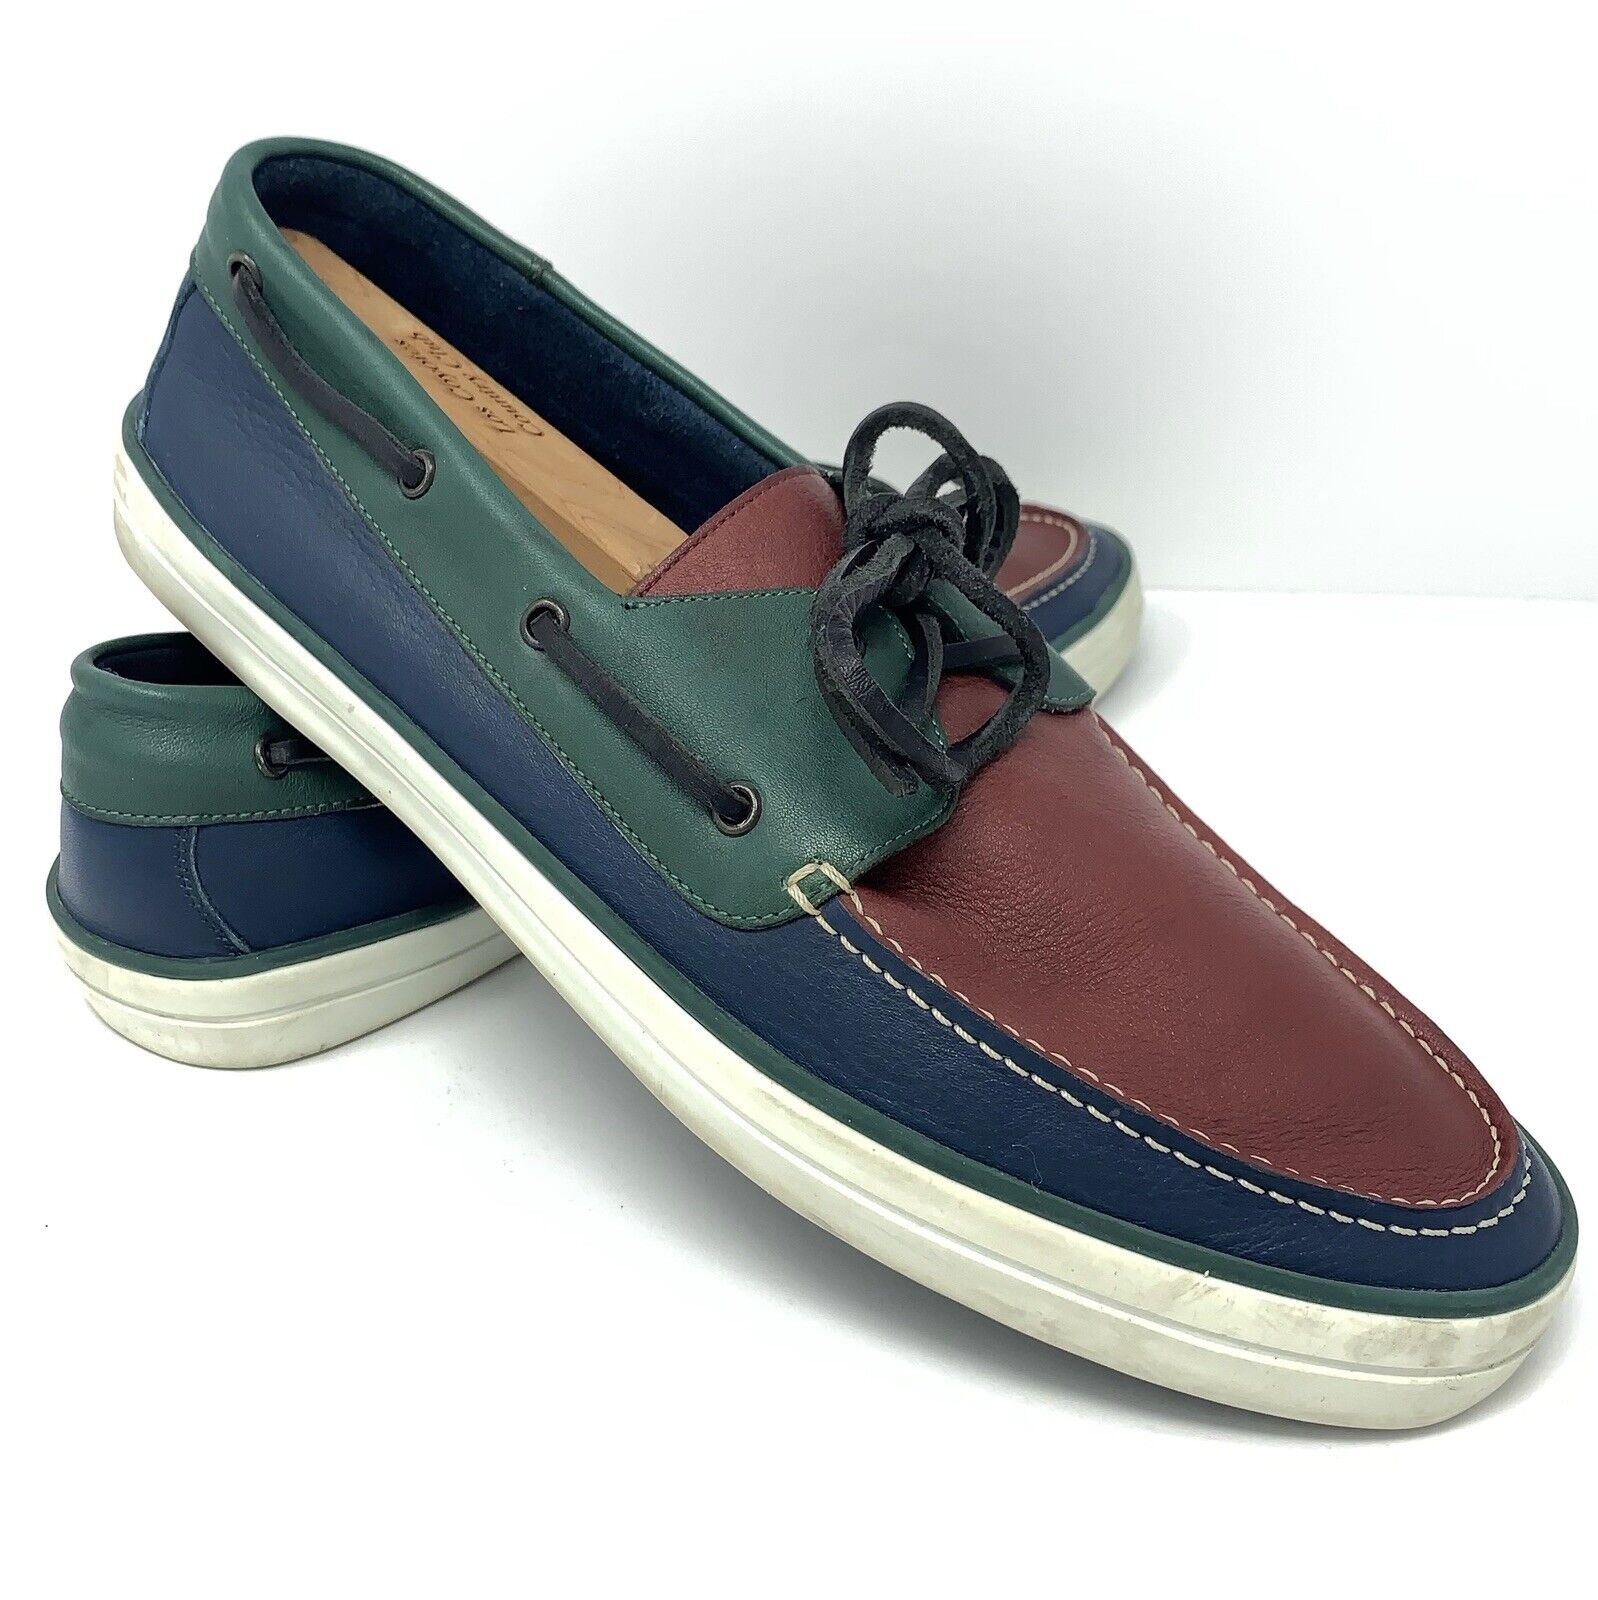 Burberry Leather Slip On Lace Up Boat shoes Multi color Size 12 (45)